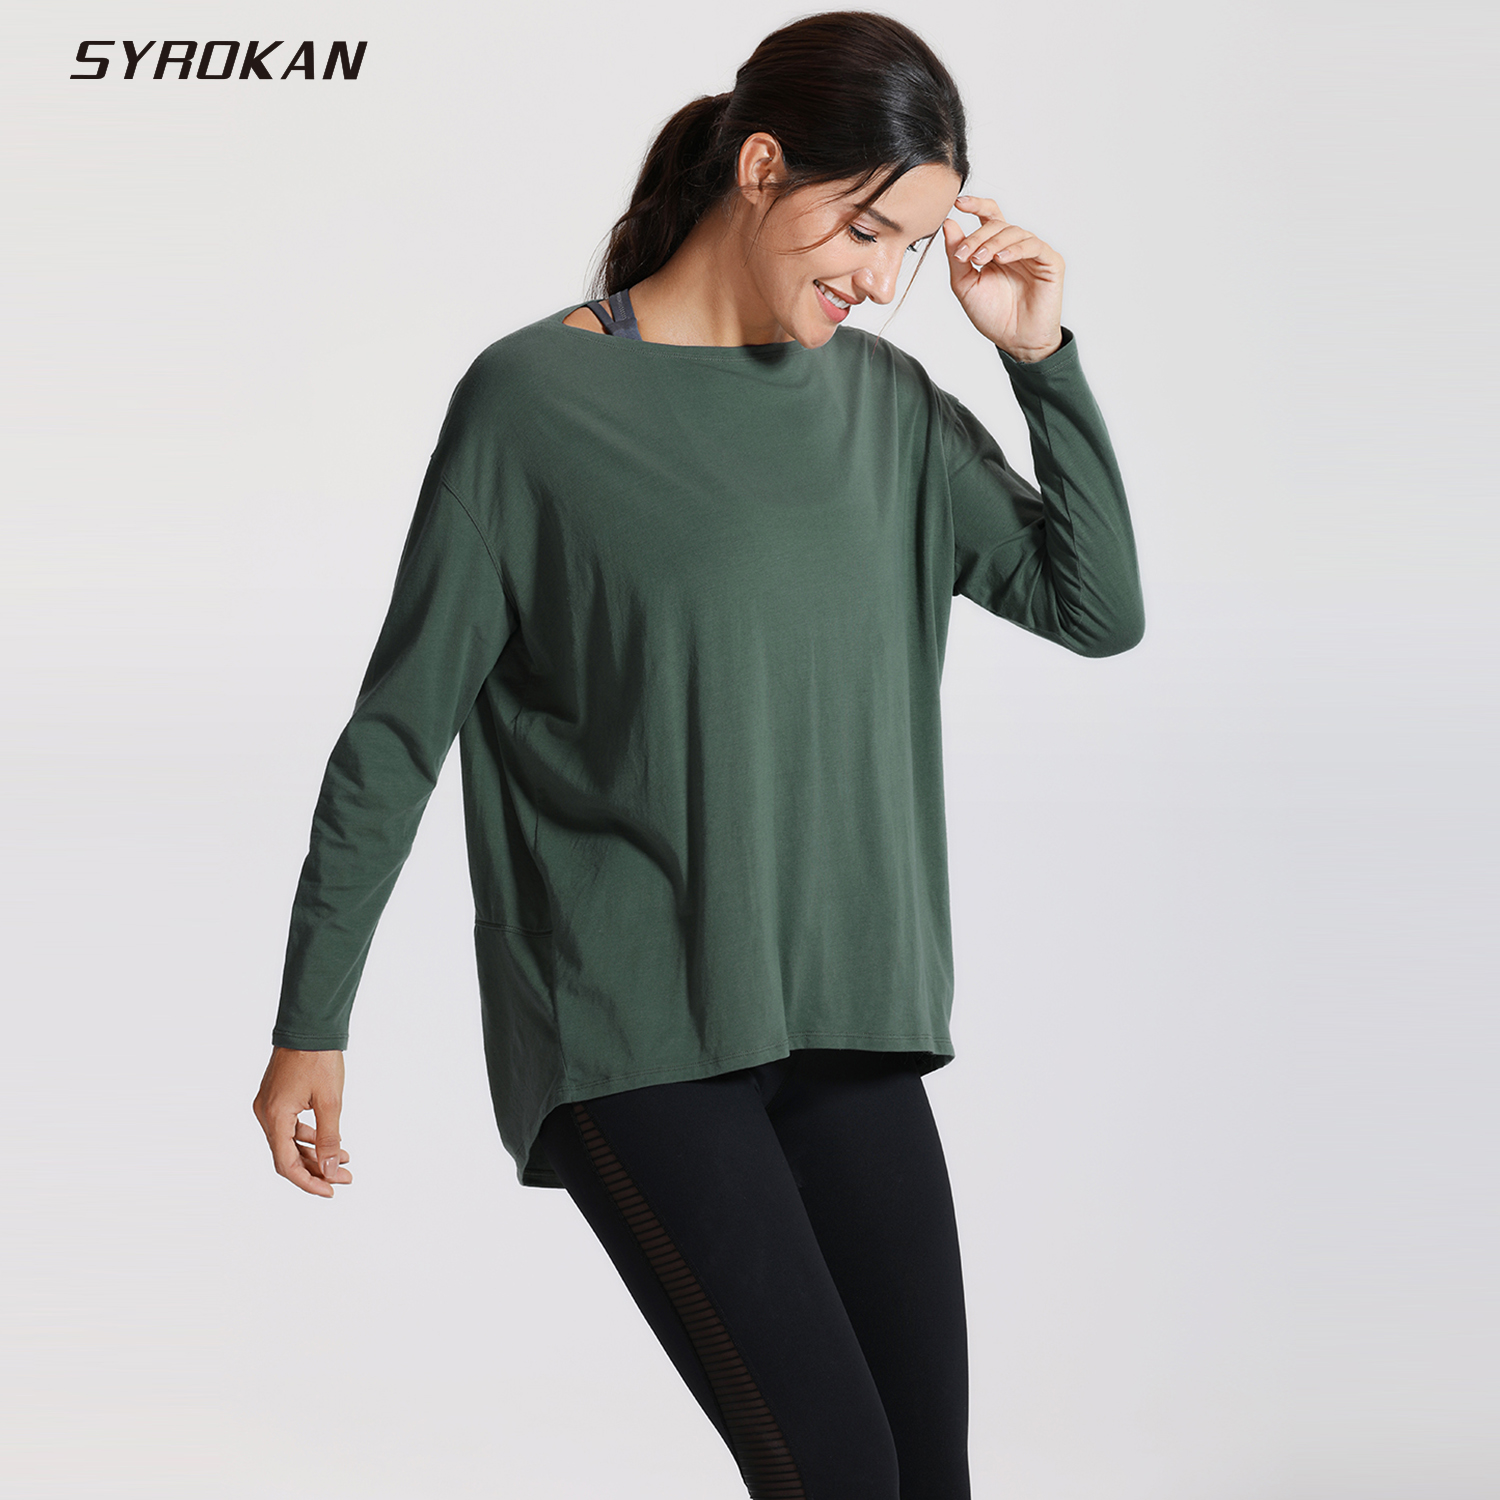 SYROKAN Women's Casual Long Sleeves Pima Cotton Workout T-shirt Sports Boat Neck Top